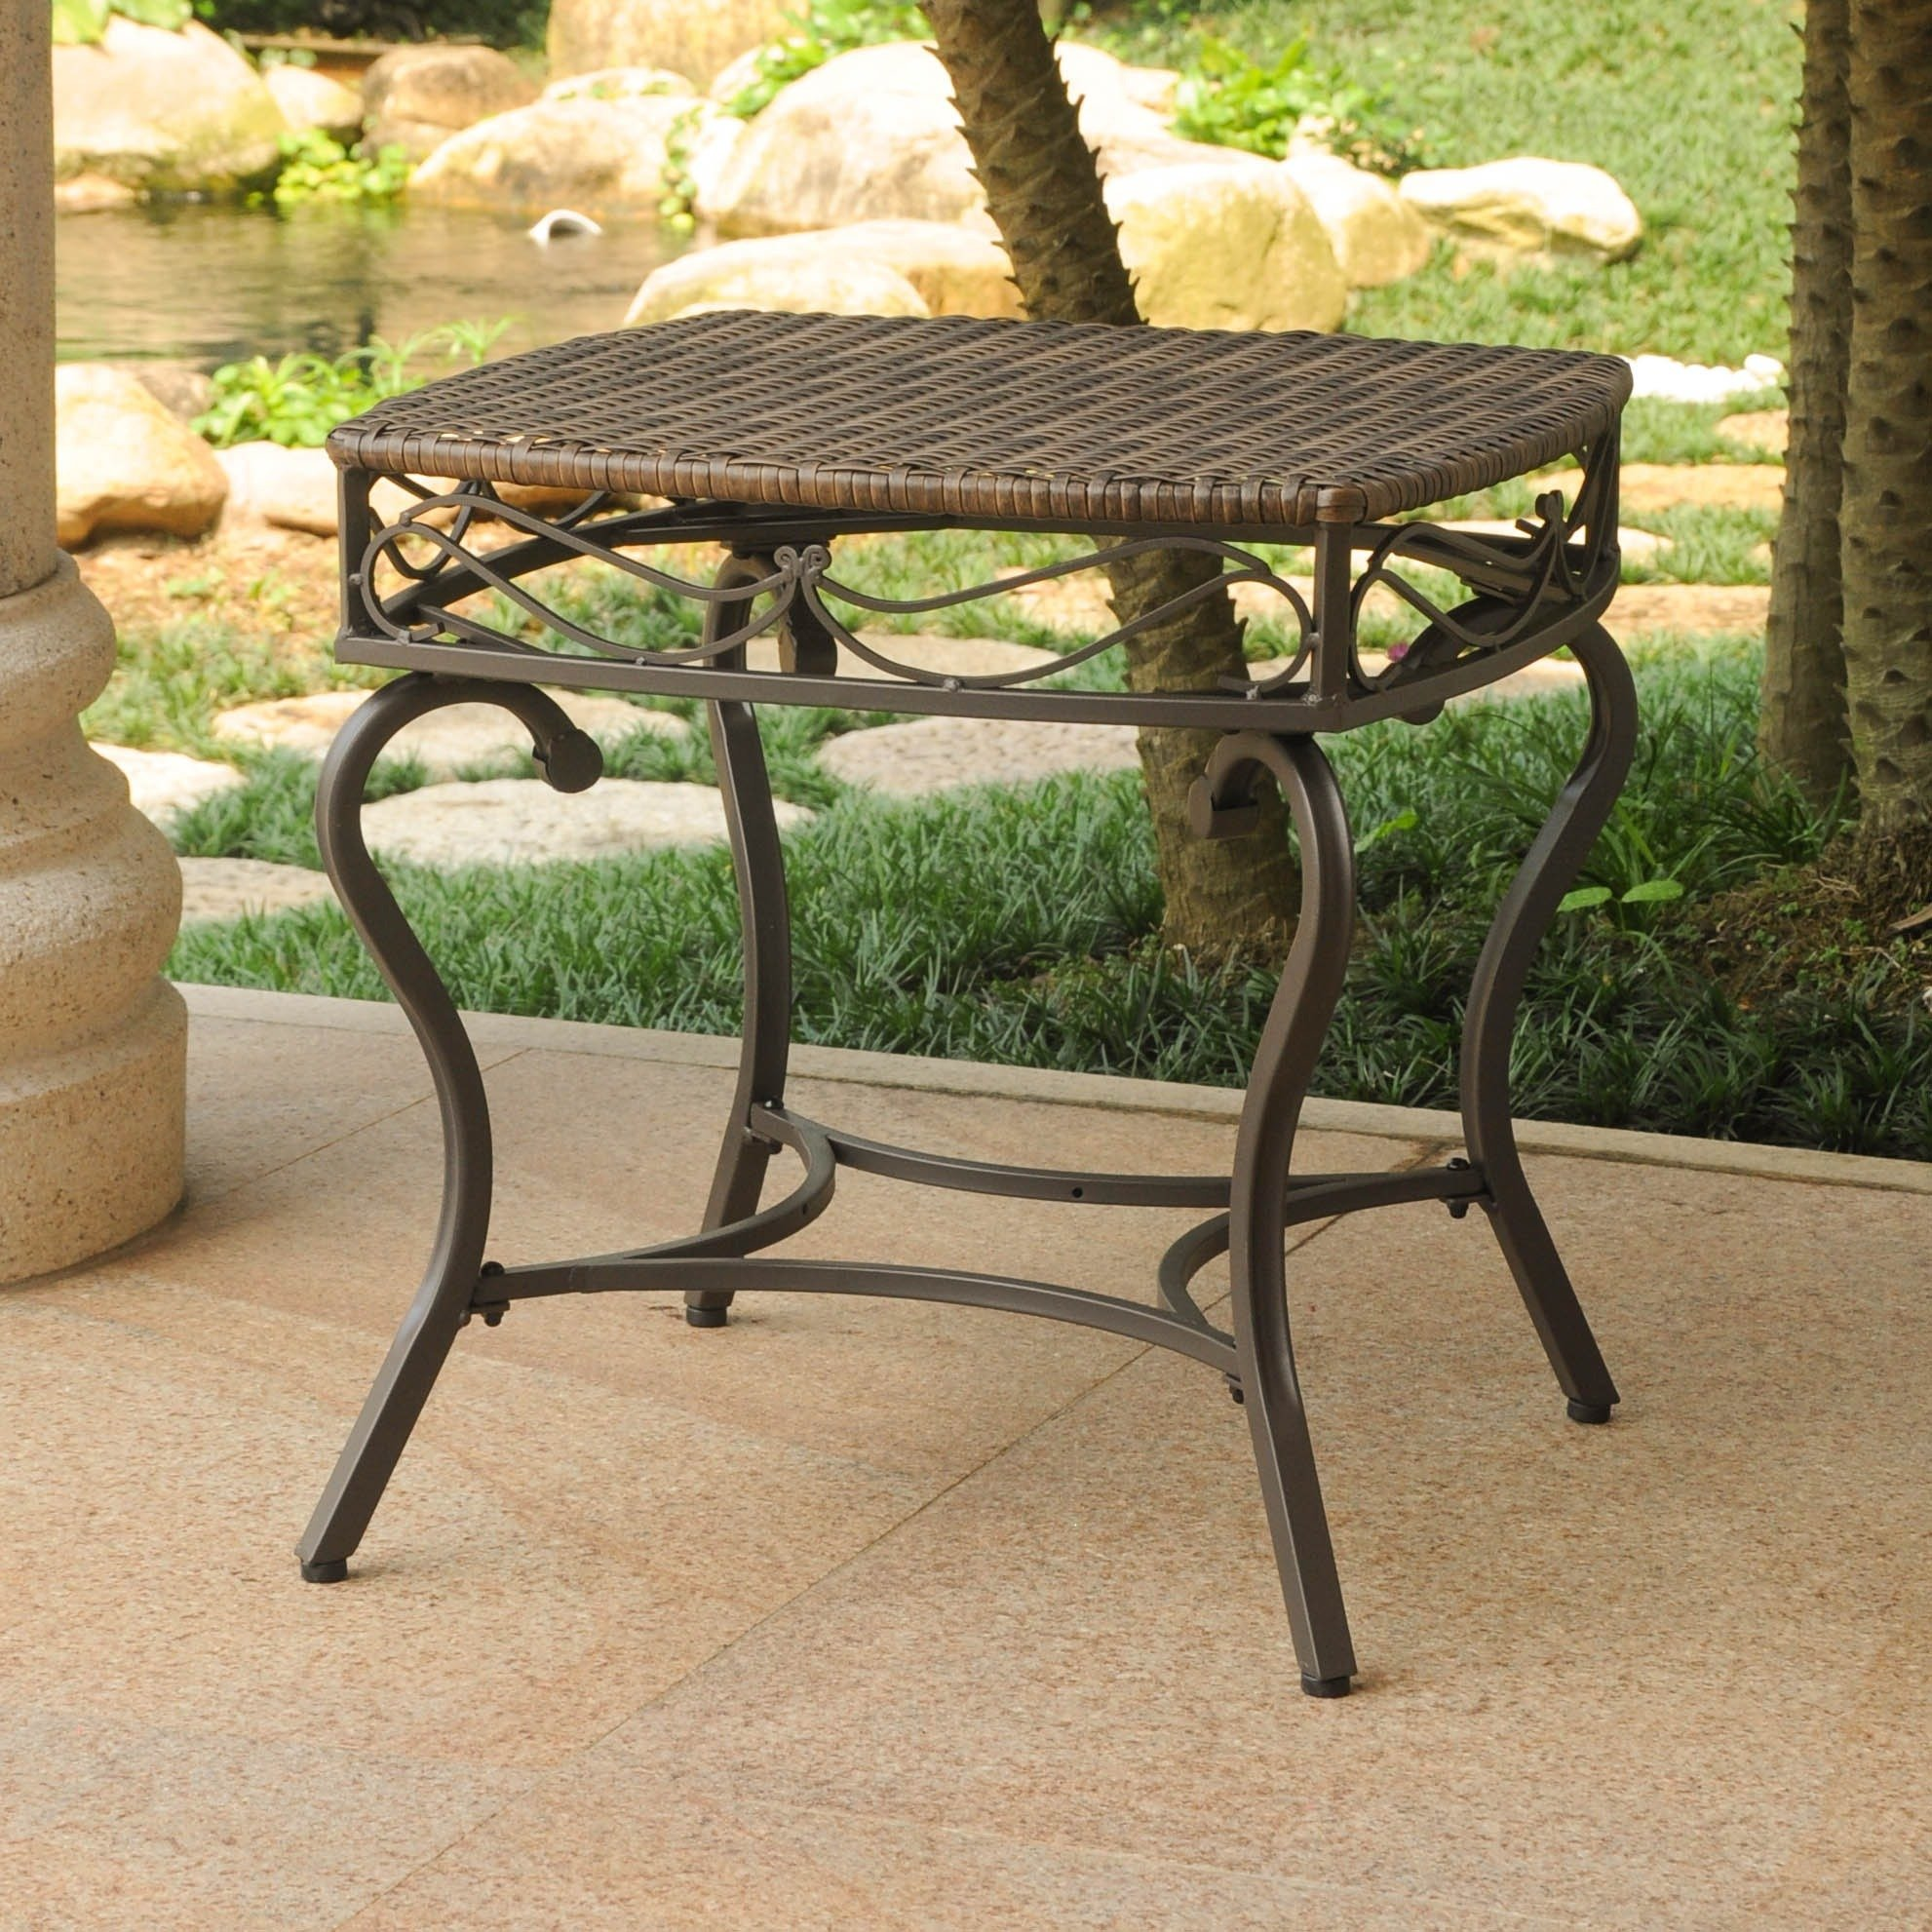 international caravan valencia brown resin wicker outdoor side table metal free shipping today small folding patio barn door dining room screw desk legs teak garden furniture